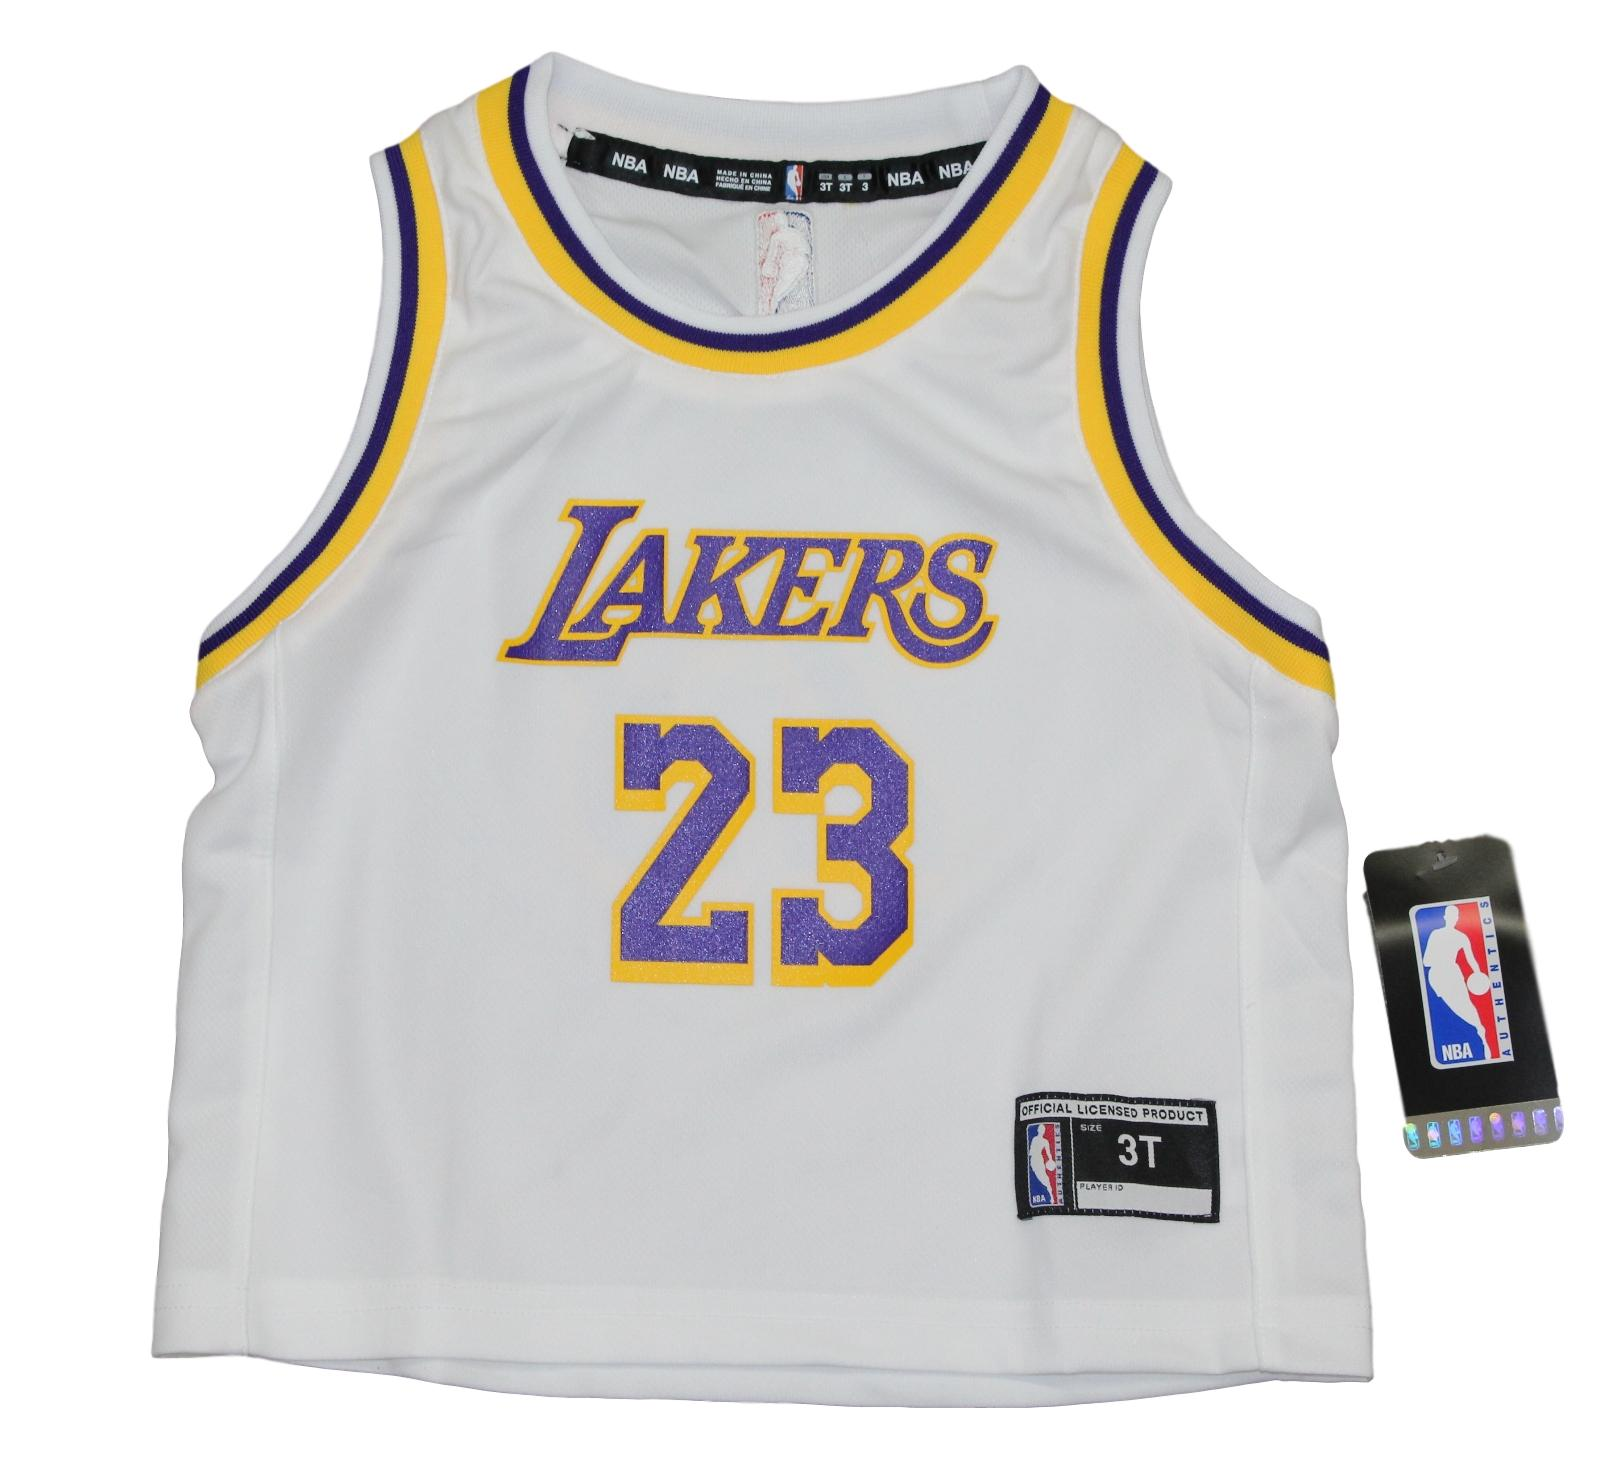 c2abc43474361 Buy Lebron James Los Angeles Lakers Toddler NBA Replica Jersey ...